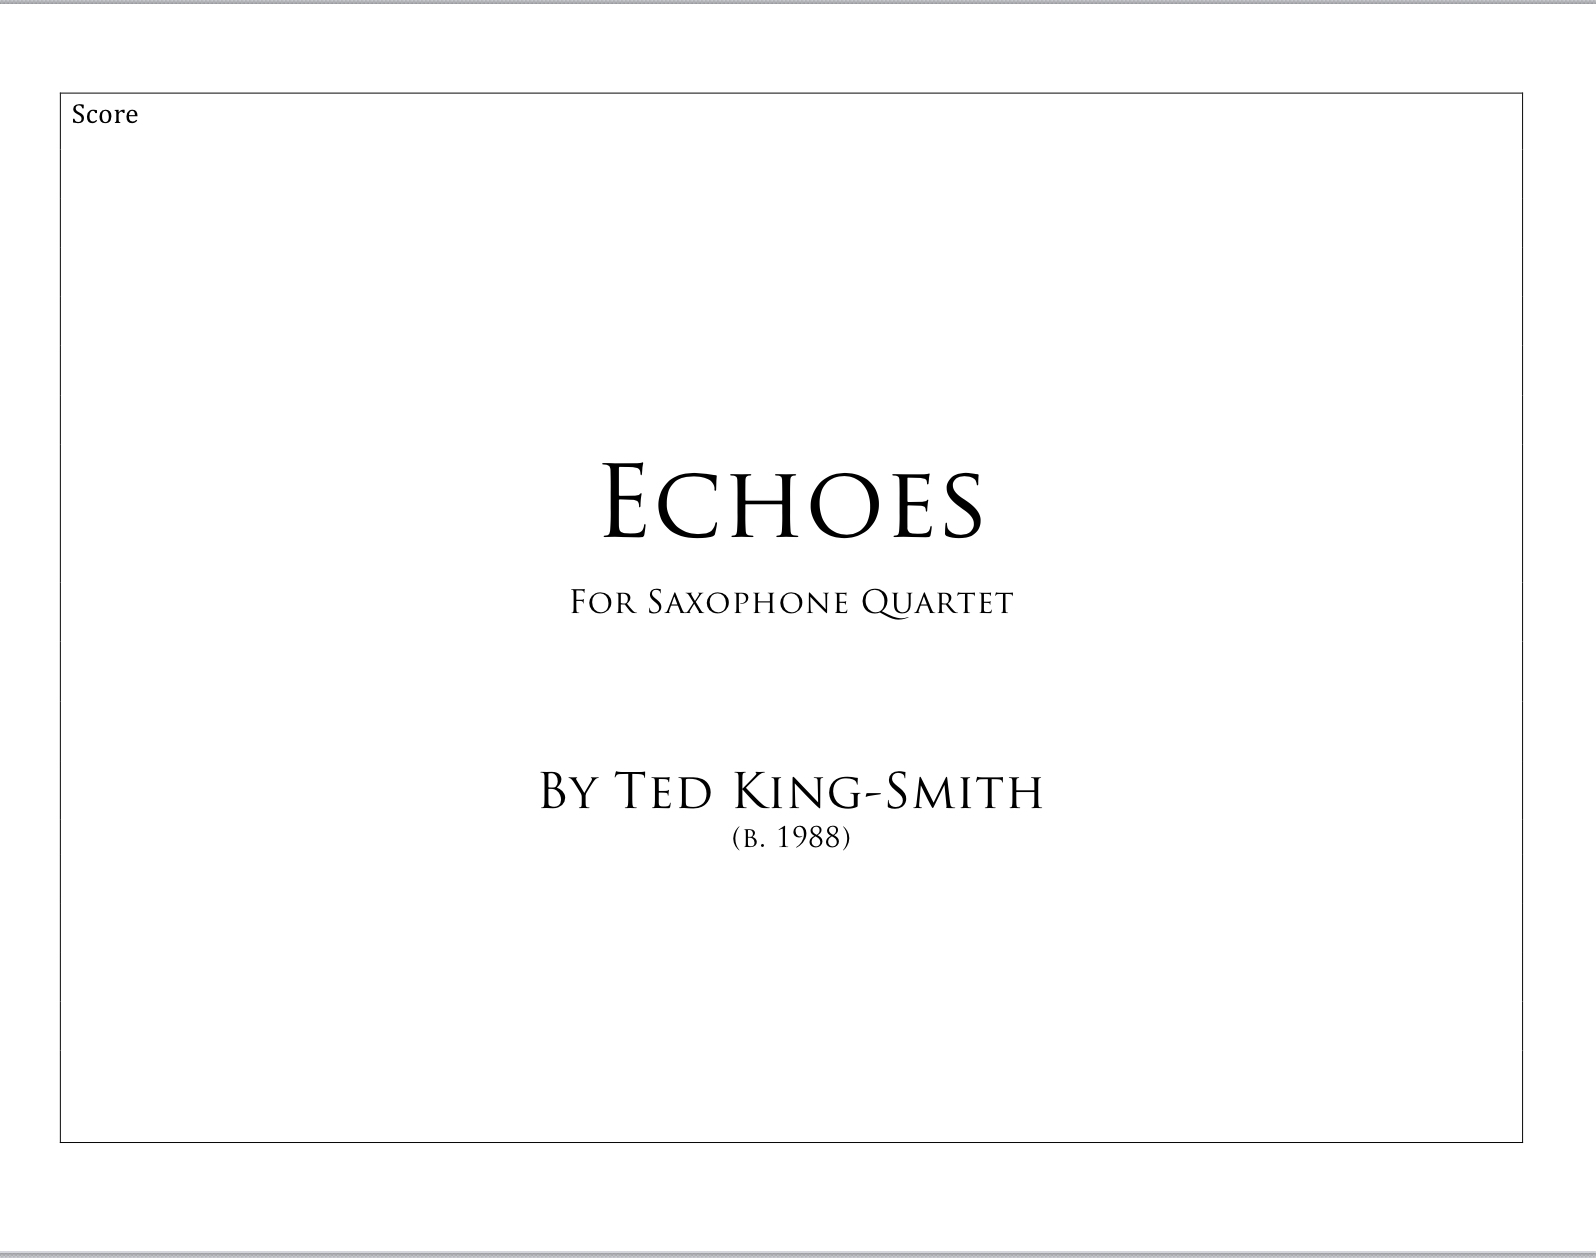 Echoes by Ted King-Smith